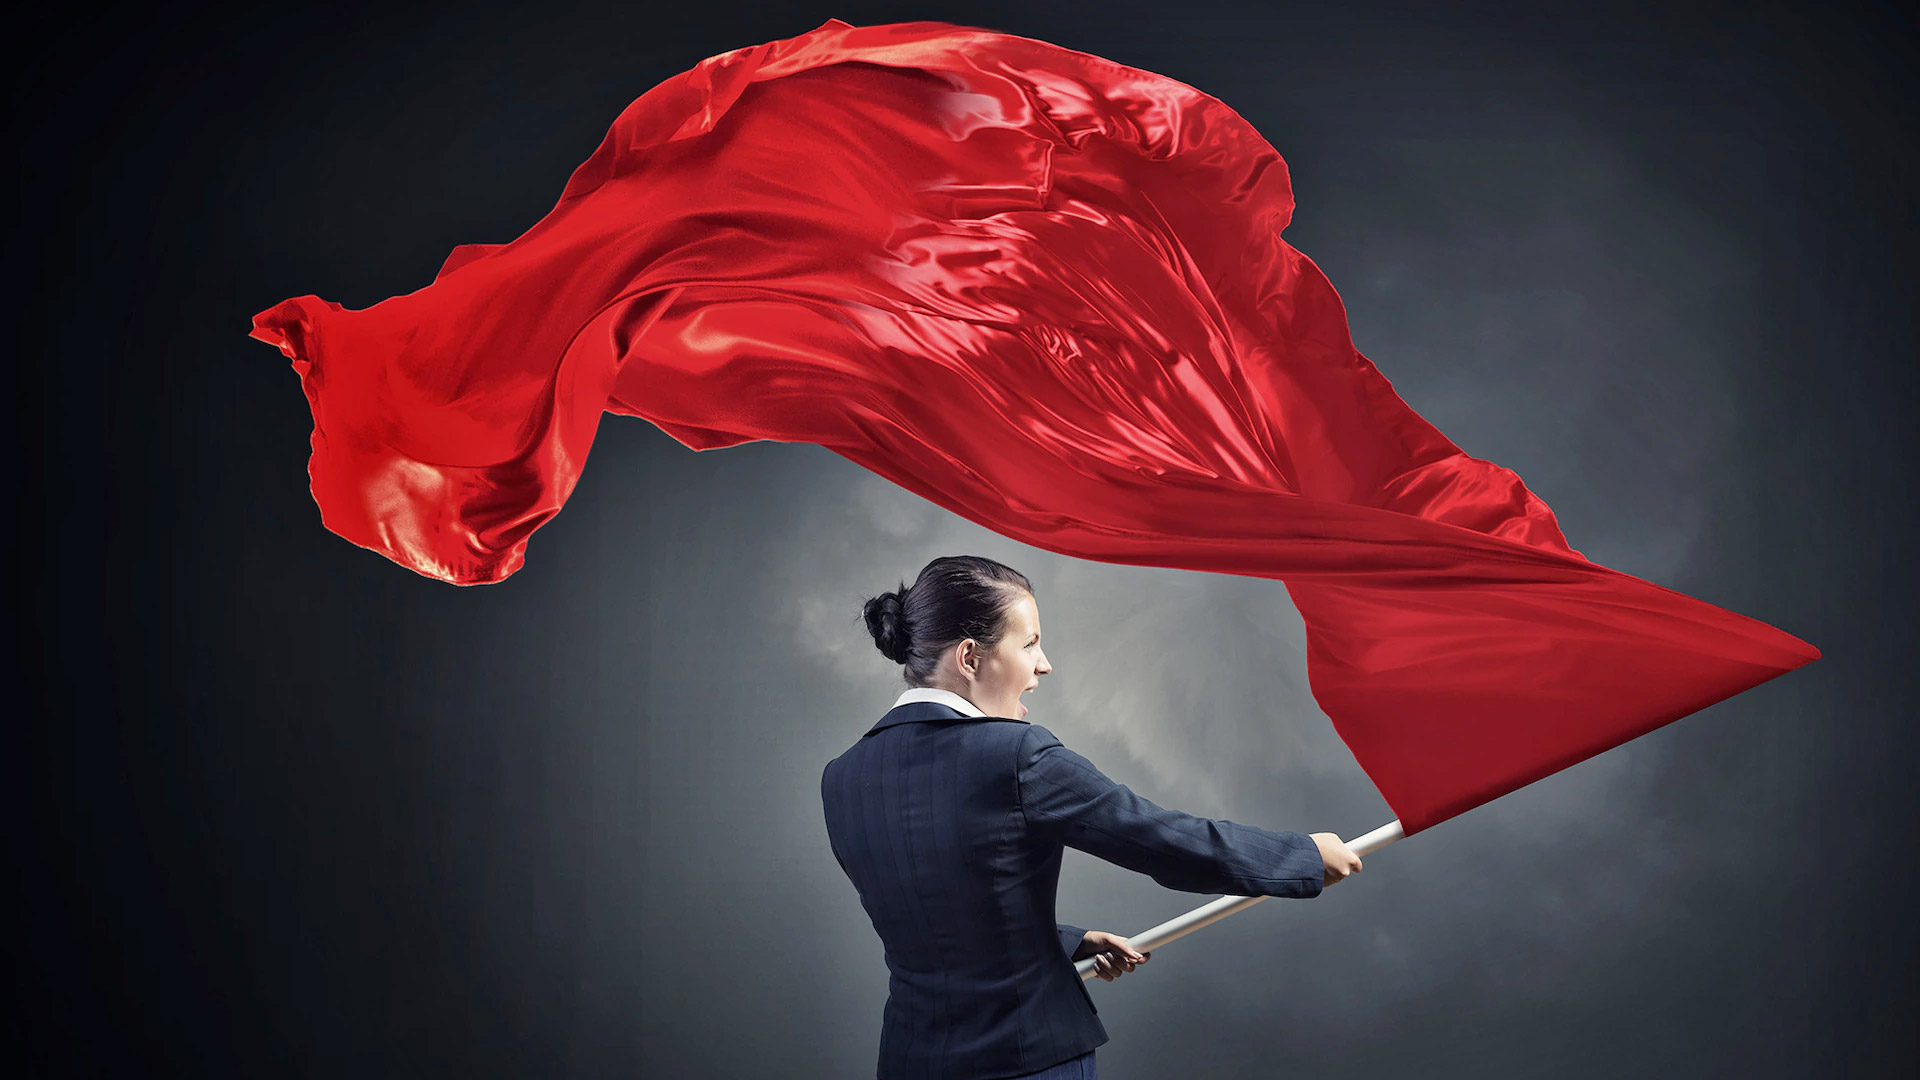 Choosing Compatible Investment Partners and Spotting RED FLAG Warnings